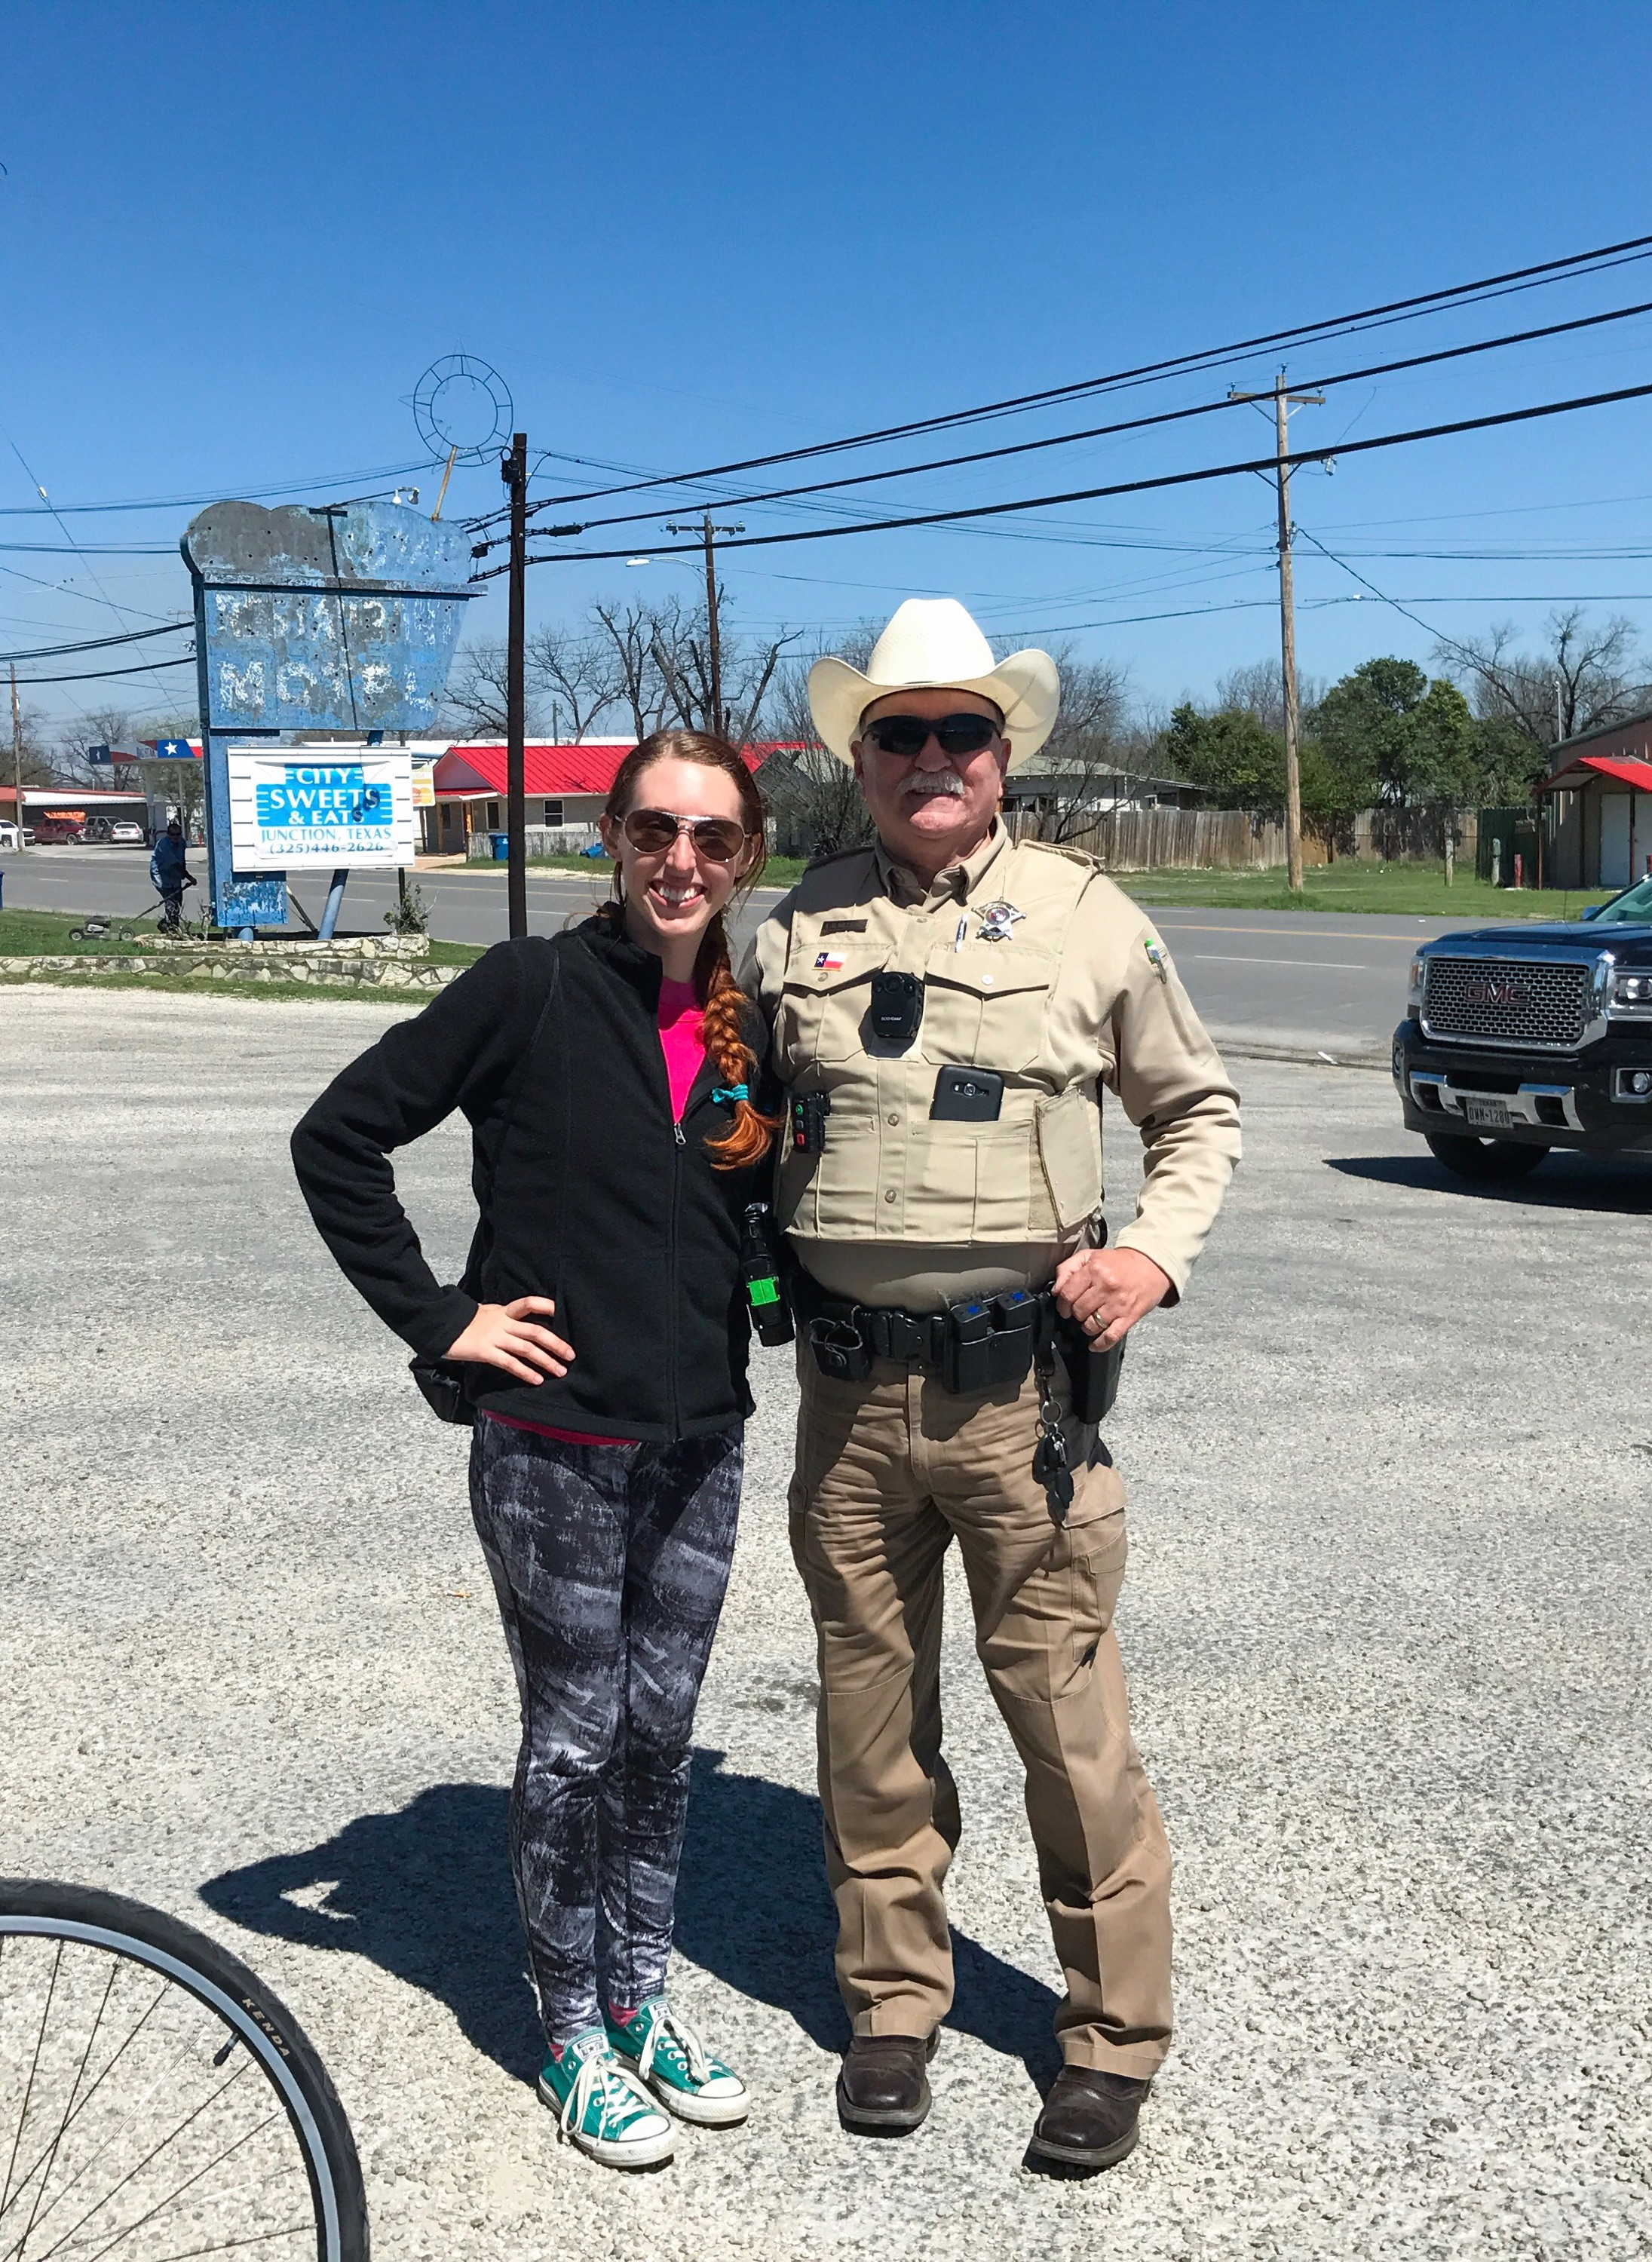 First day in town and already made friends with the Sheriff